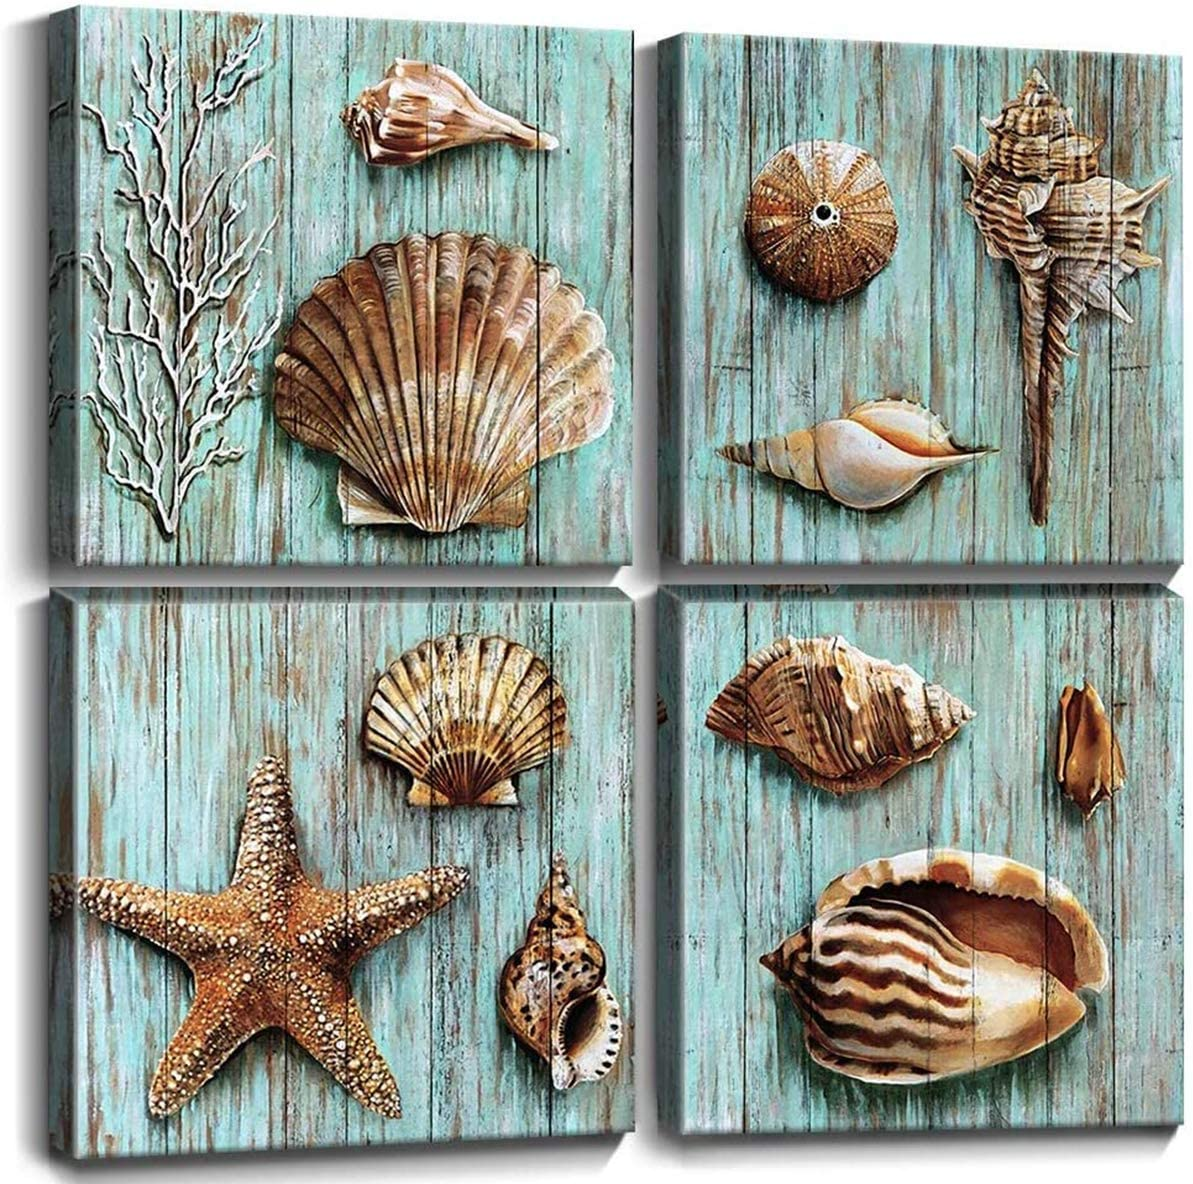 Amazon Com Blue Shells Wall Art Home Decor For Bathroom Shell Conch Framed Canvas Prints Sea Ocean Paintings Pictures Marine Life Coral Starfish Modern Large Artwork Living Room Home Decoration Set 4 Pcs